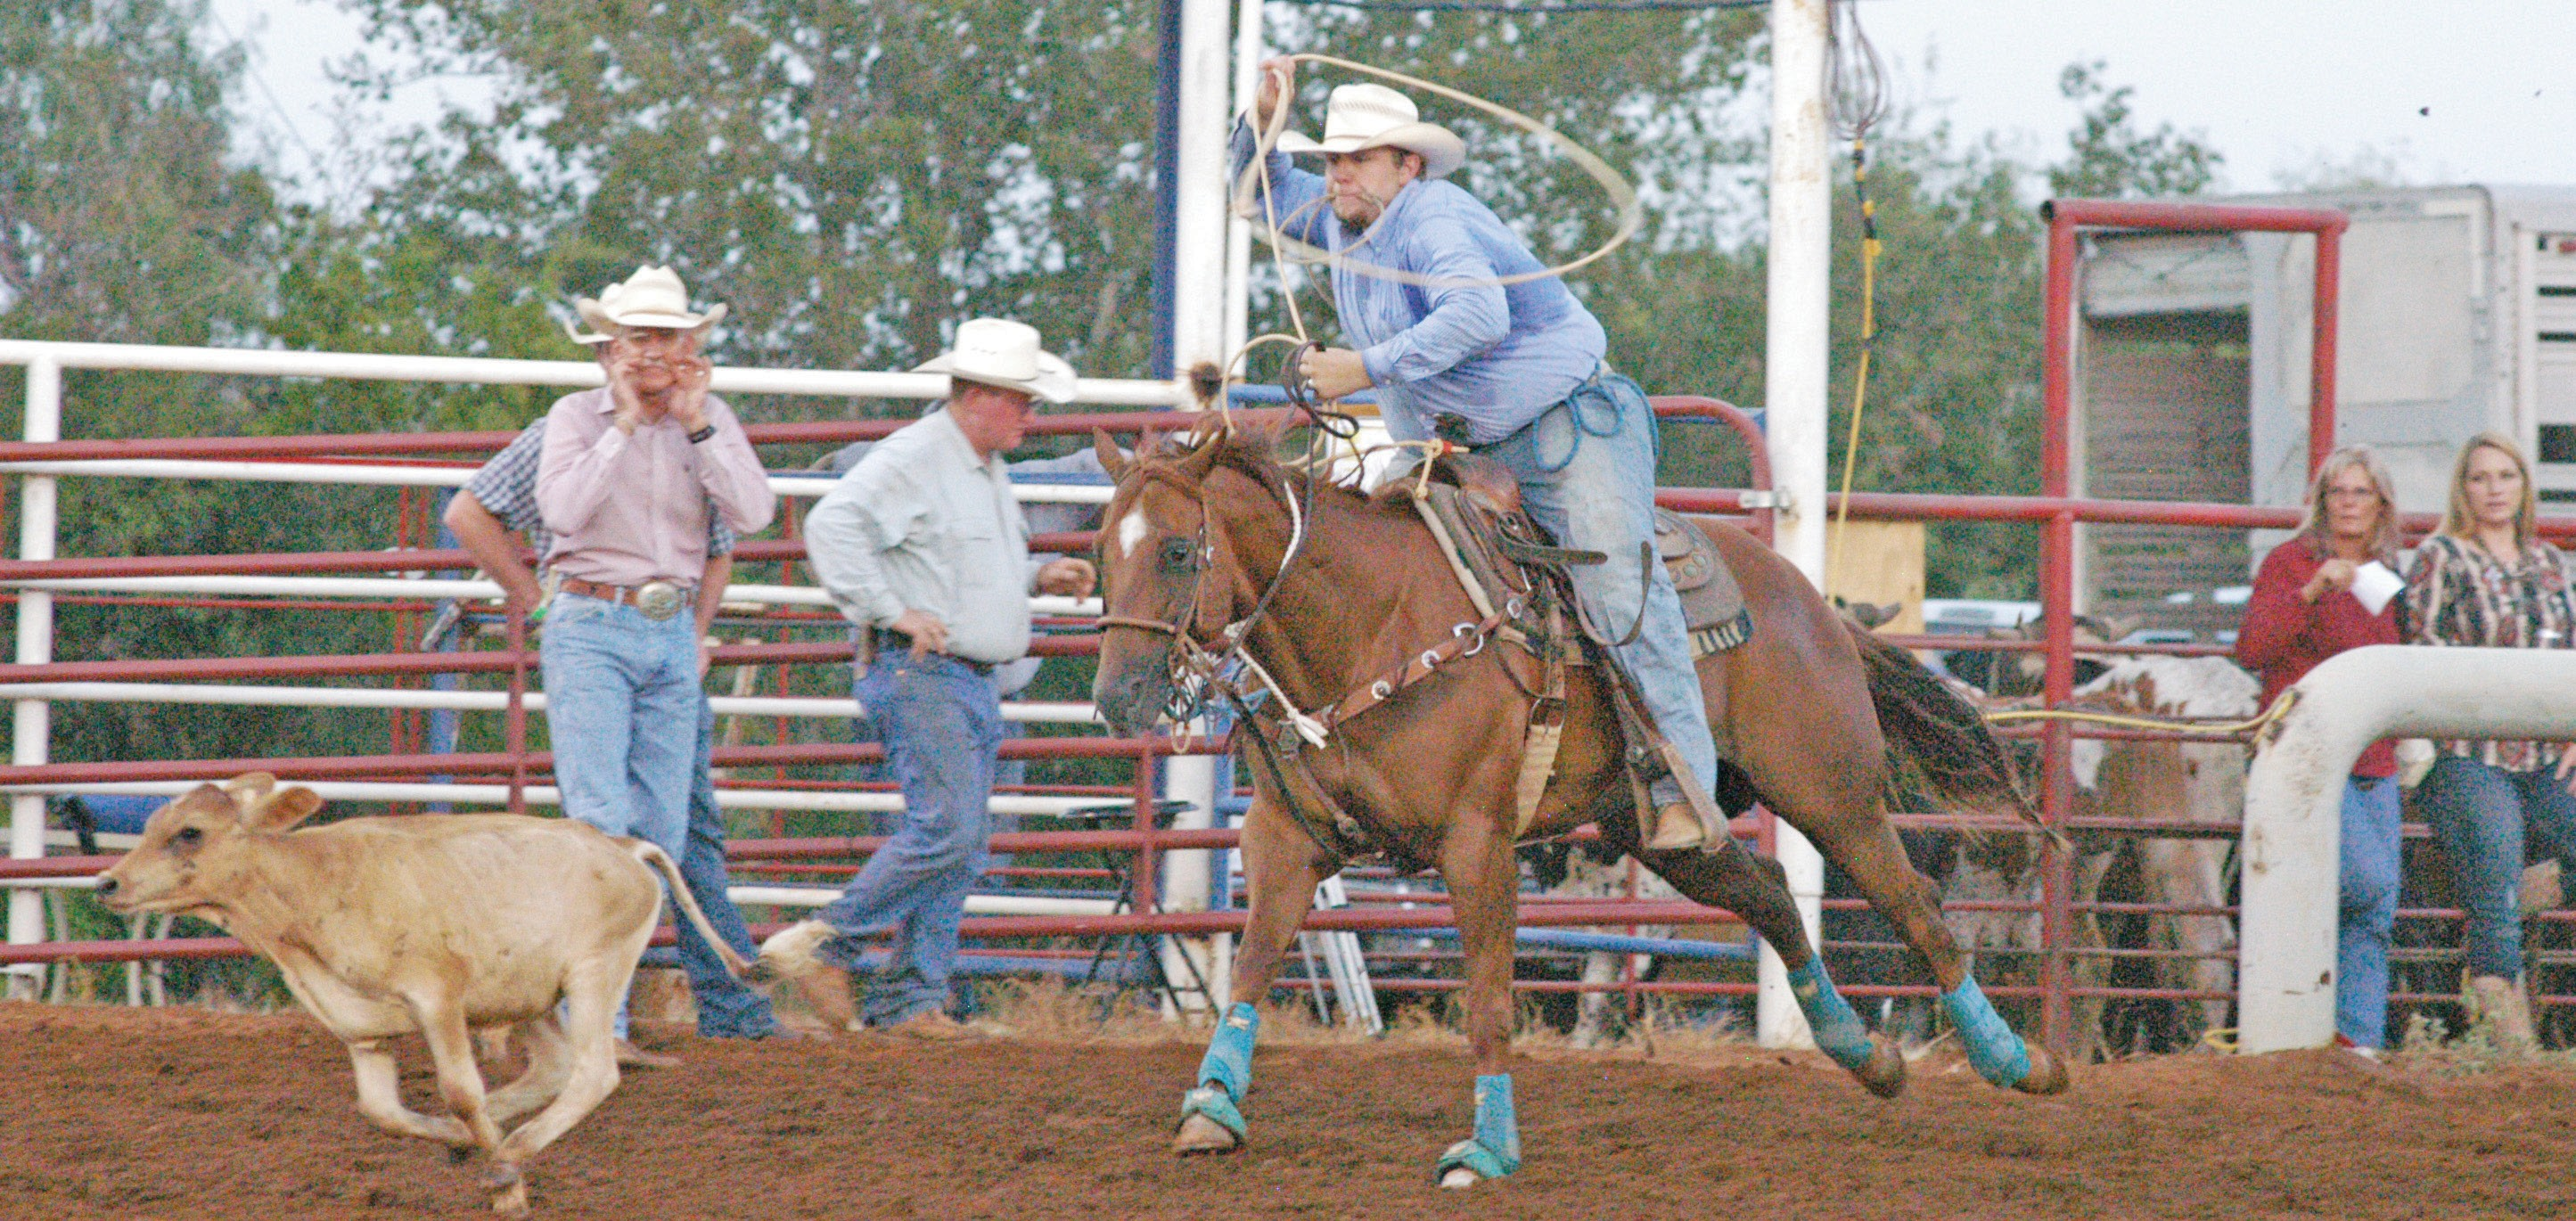 For some great open rodeo action and music by Natalie Rose & Mark Chesnutt, attend this event at the Atascosa County showbarn rodeo arena between Pleasanton and Jourdanton on August 15 & 16.